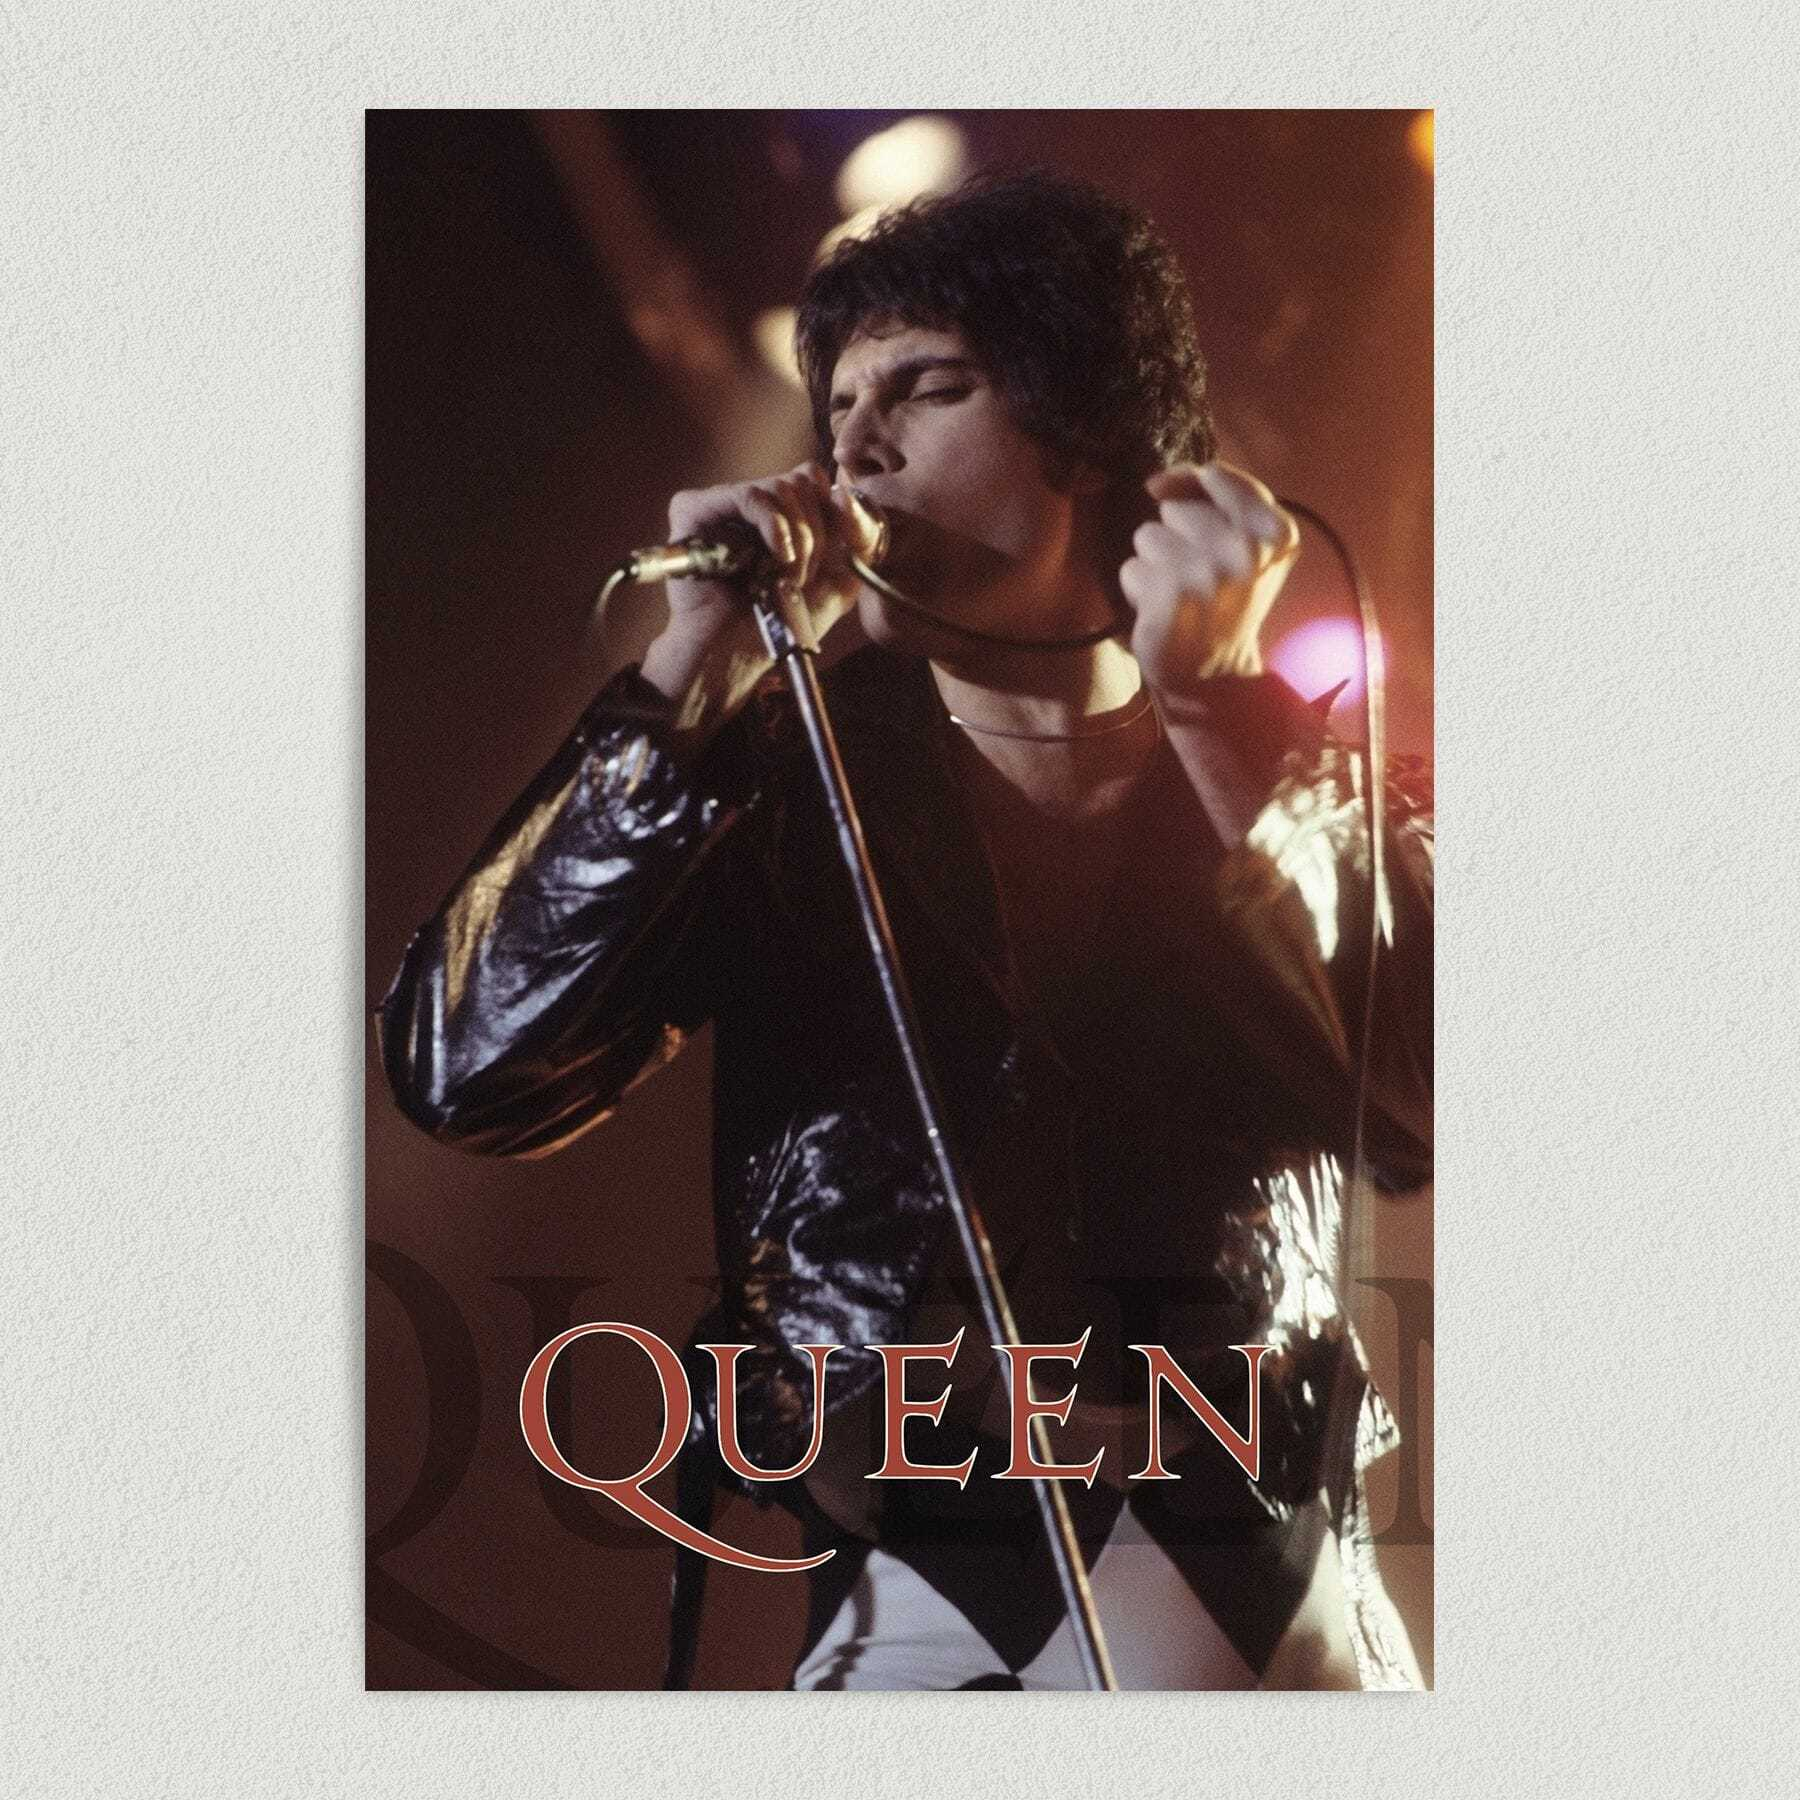 Freddie Mercury Performing With Queen Band Art Print Poster 12″ x 18″ Wall Art MB1000